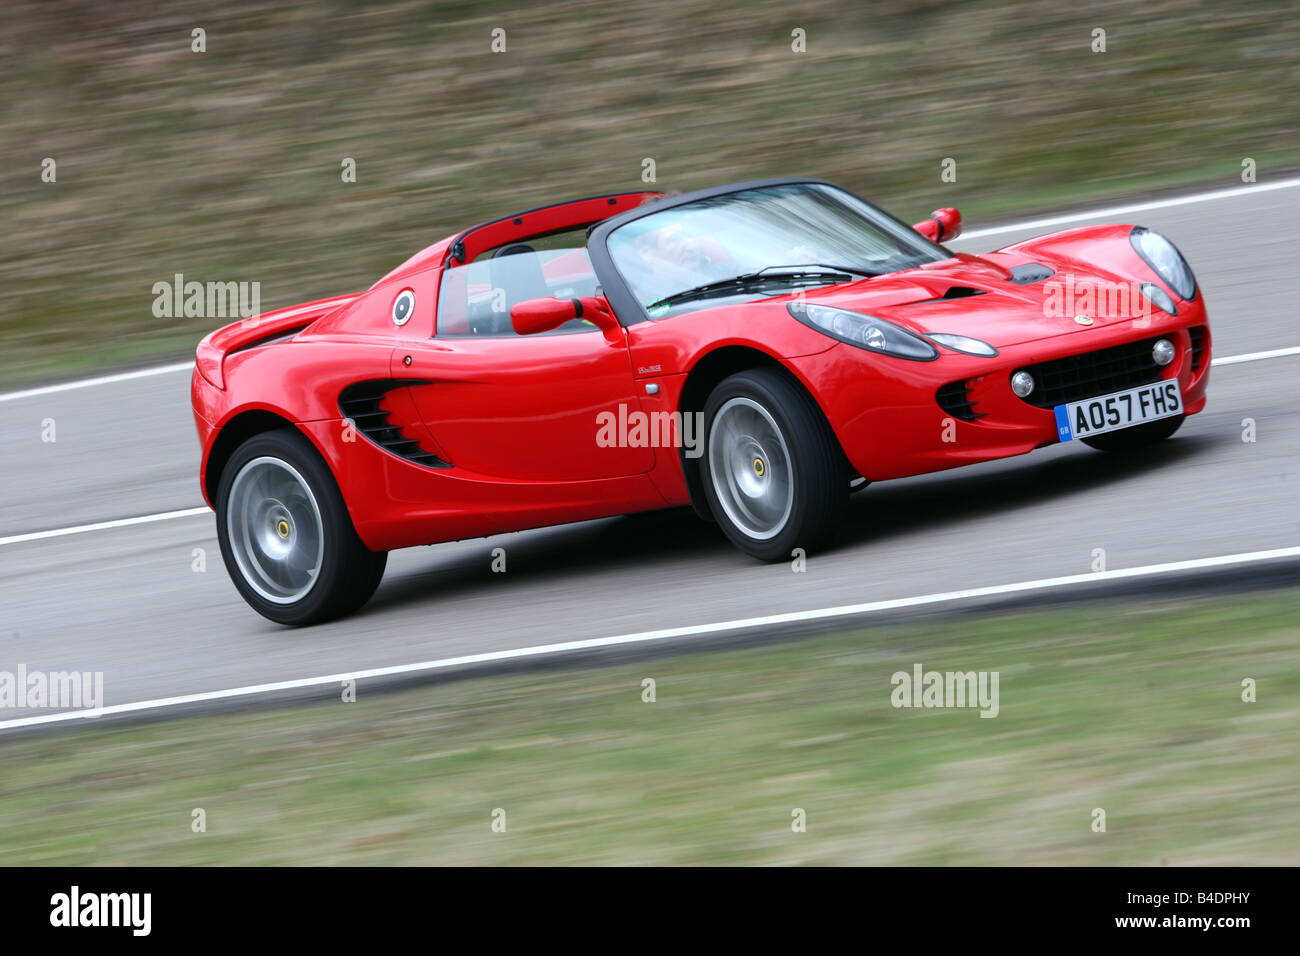 https://c8.alamy.com/comp/B4DPHY/lotus-elise-sc-model-year-2008-red-driving-diagonal-from-the-front-B4DPHY.jpg